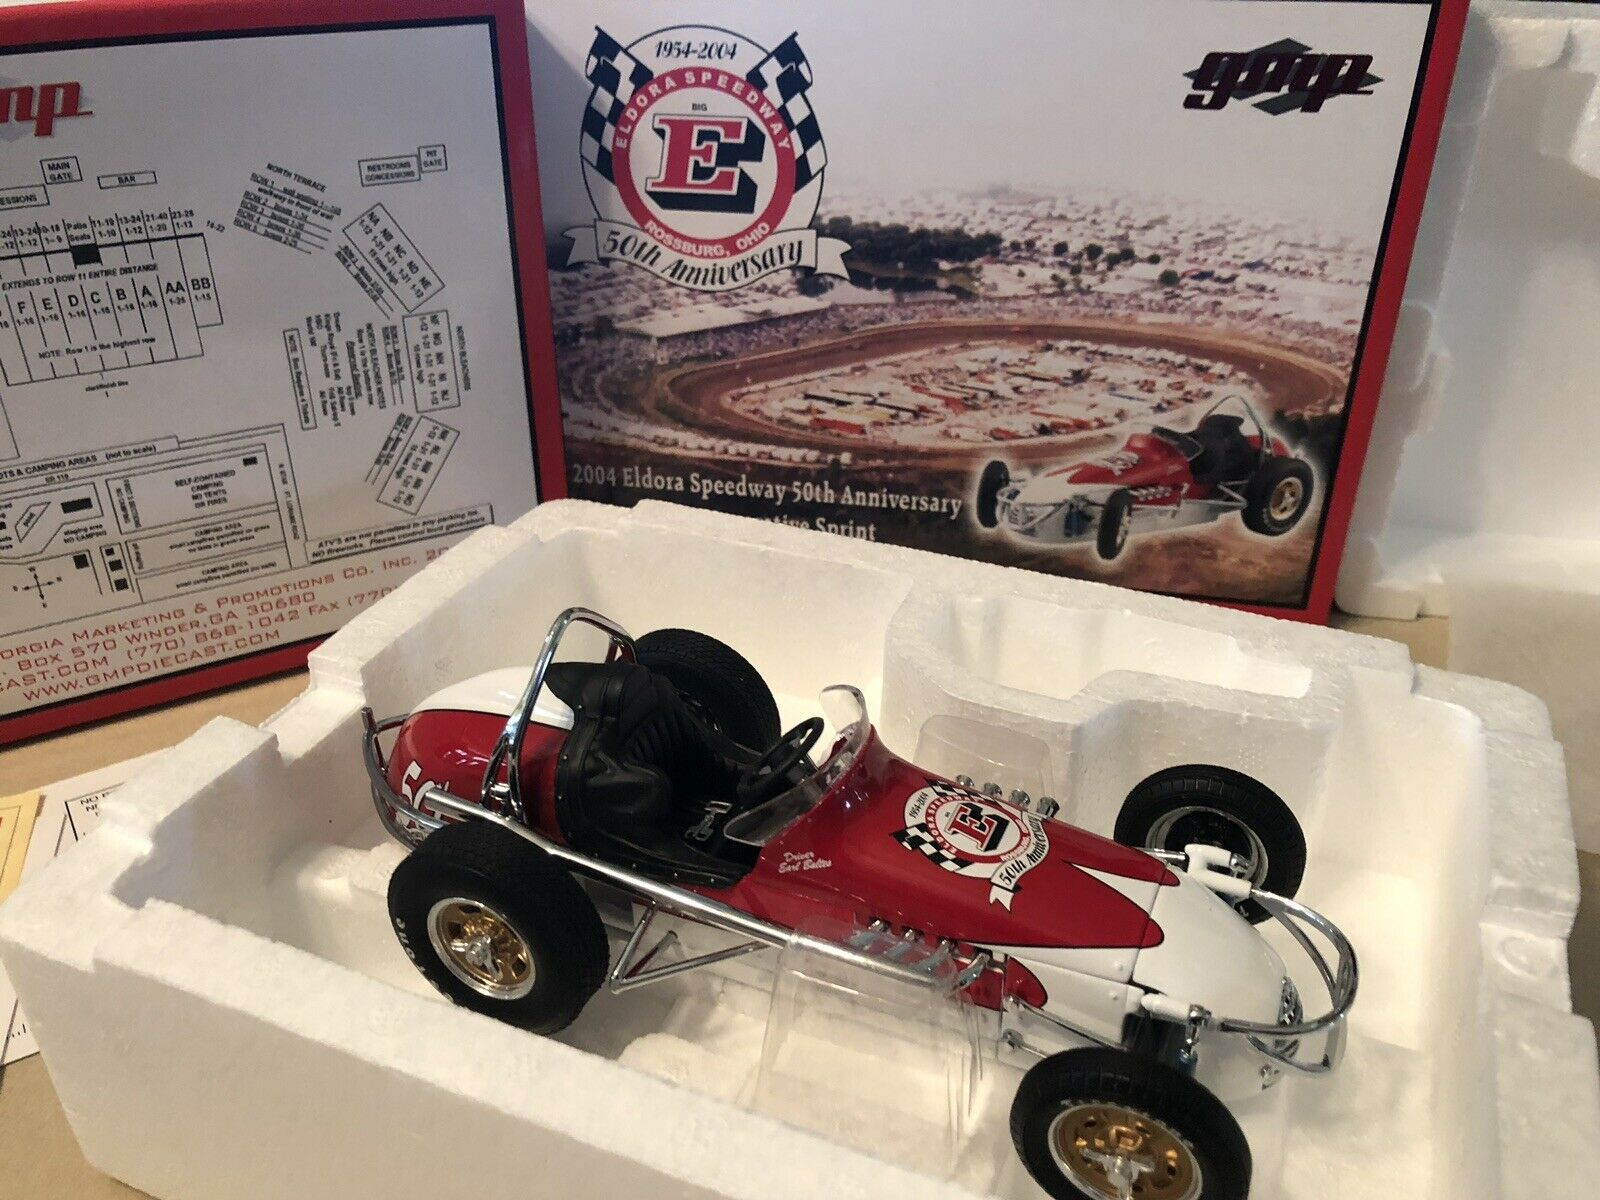 GMP 2004 Eldora Speedway 50th Anniversary Commemorative Sprint 1 18 Scale